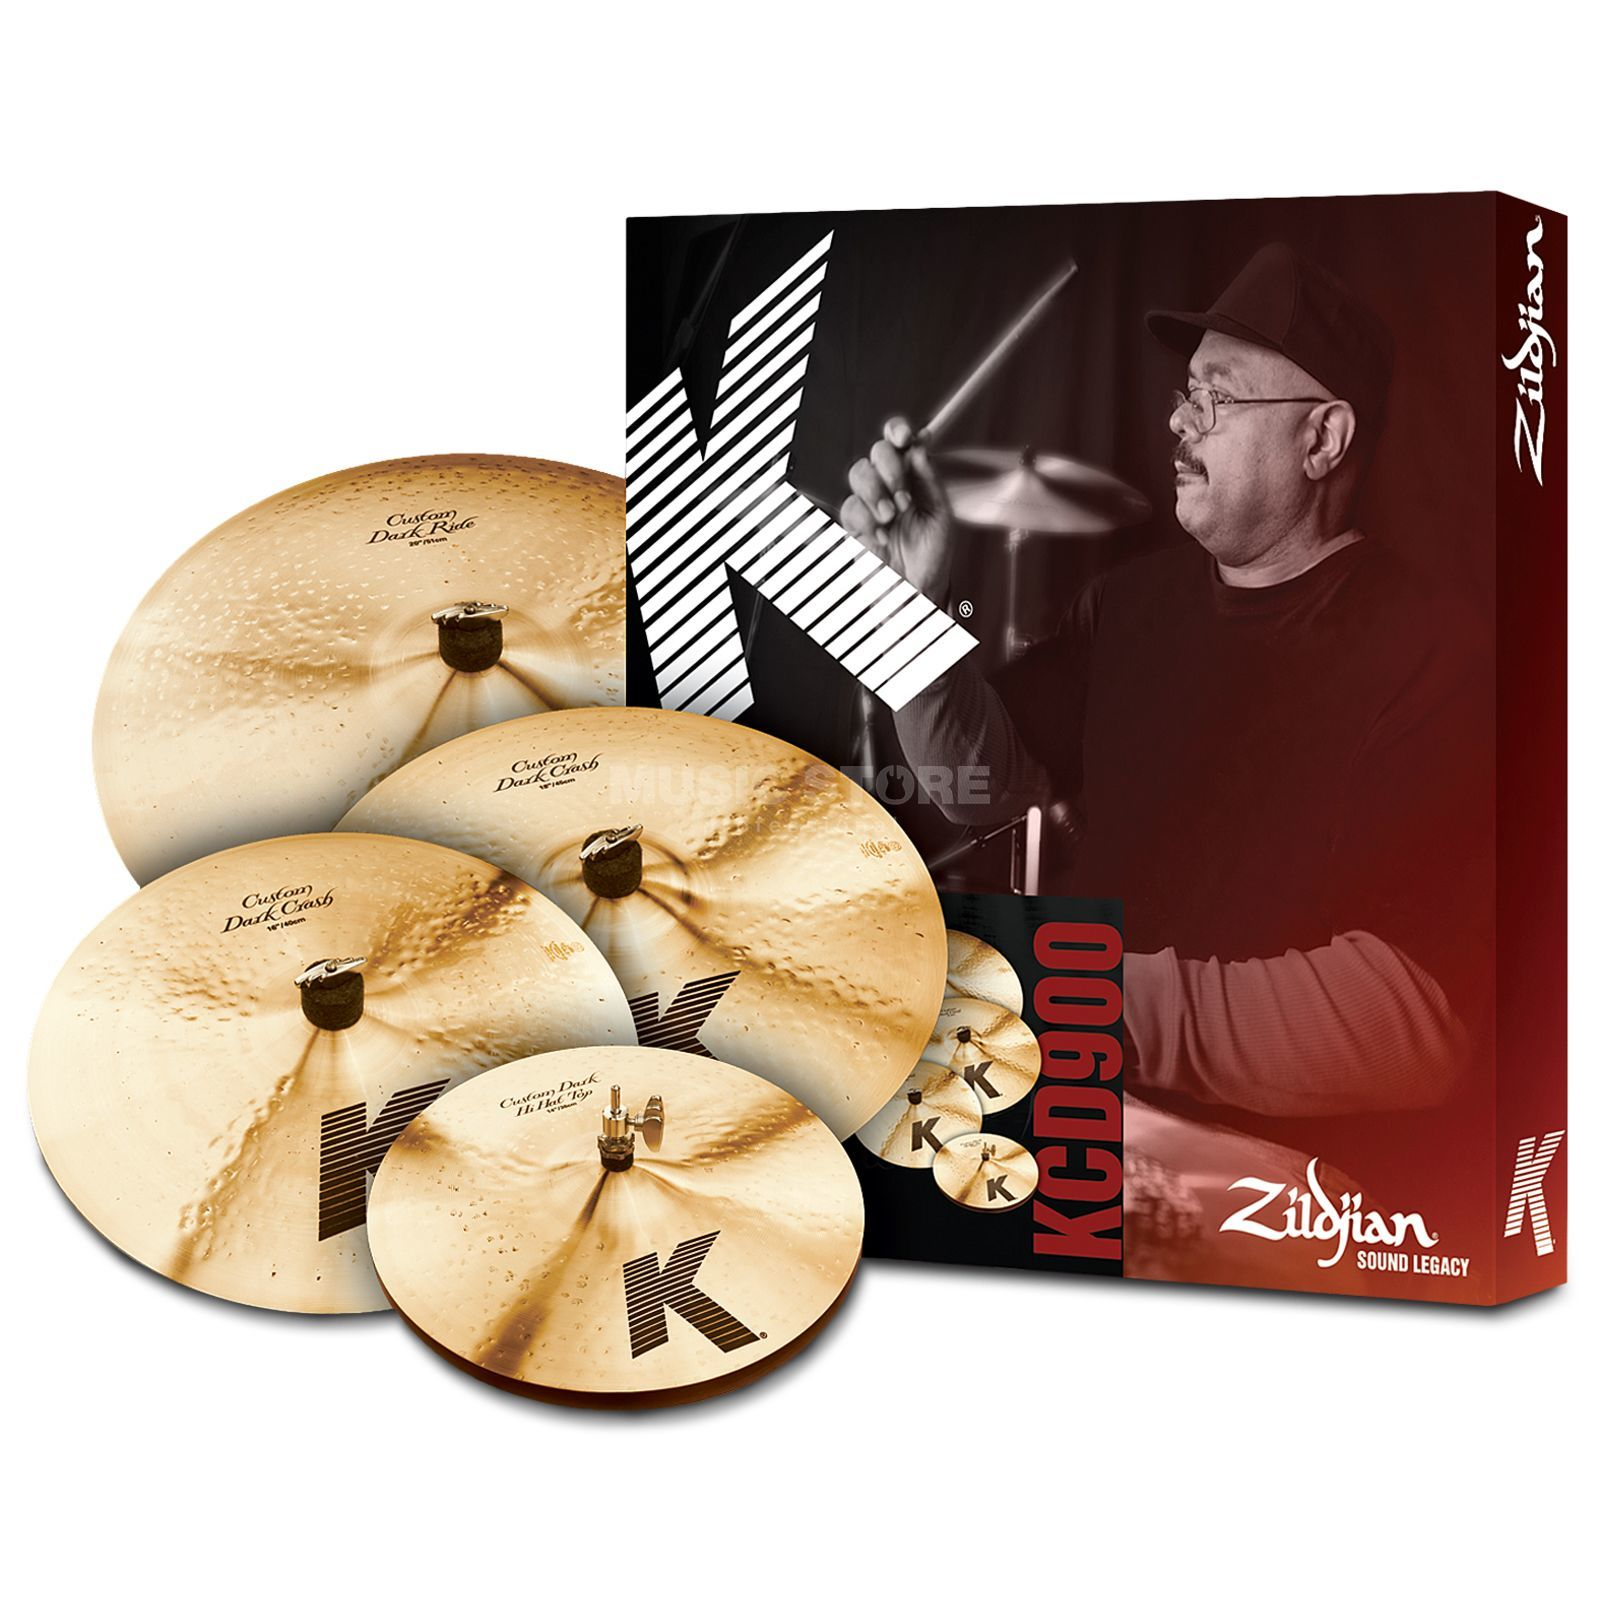 "Zildjian K' Custom Dark Set KCD900, 14""HH, 16"" Cr, 20""R + 18Cr Product Image"